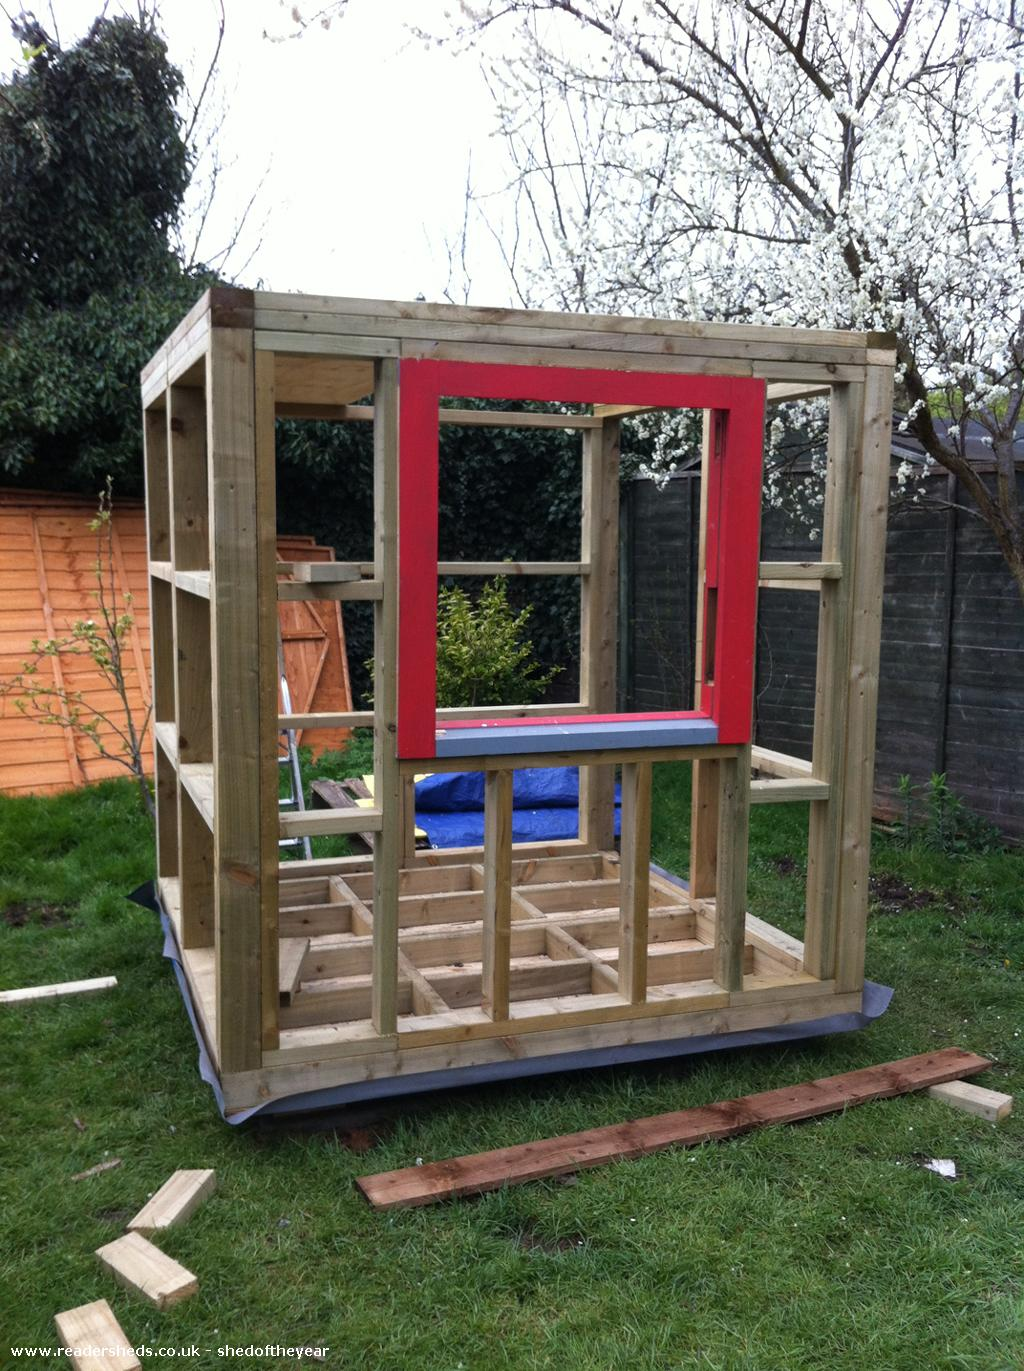 Photo of The poki, entry to Shed of the year-Building the frame